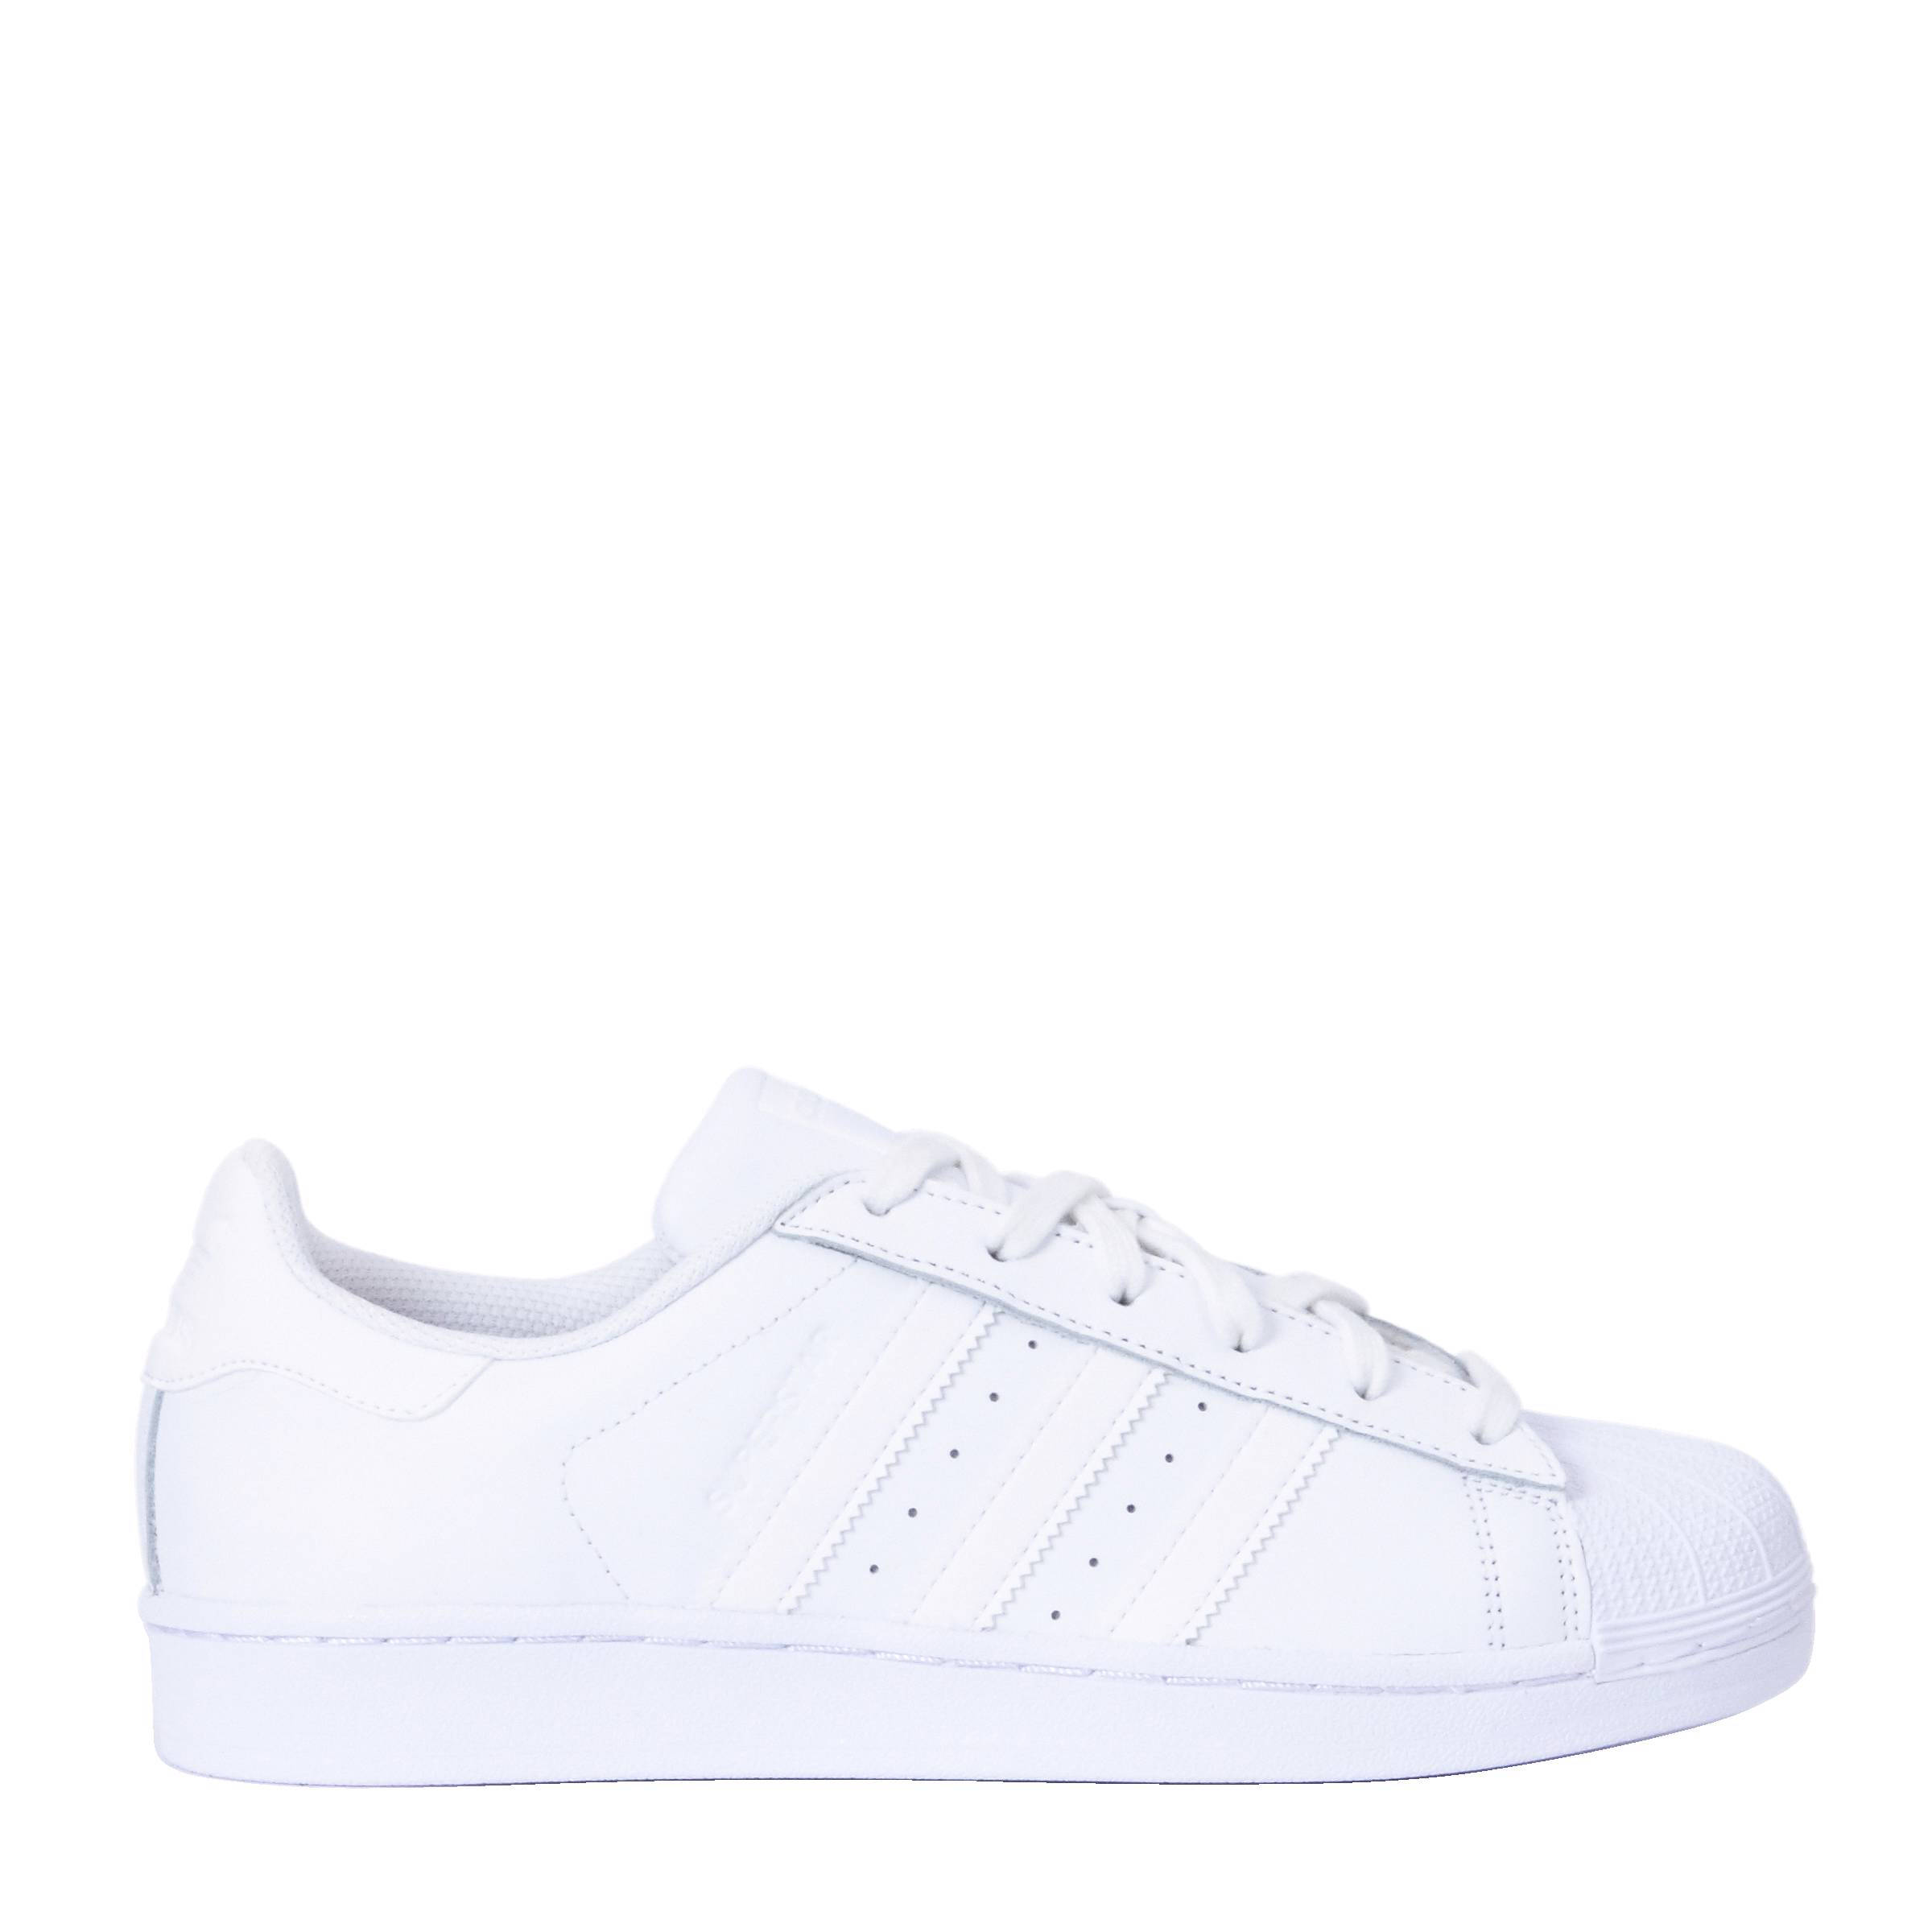 adidas superstar dames of heren verschil